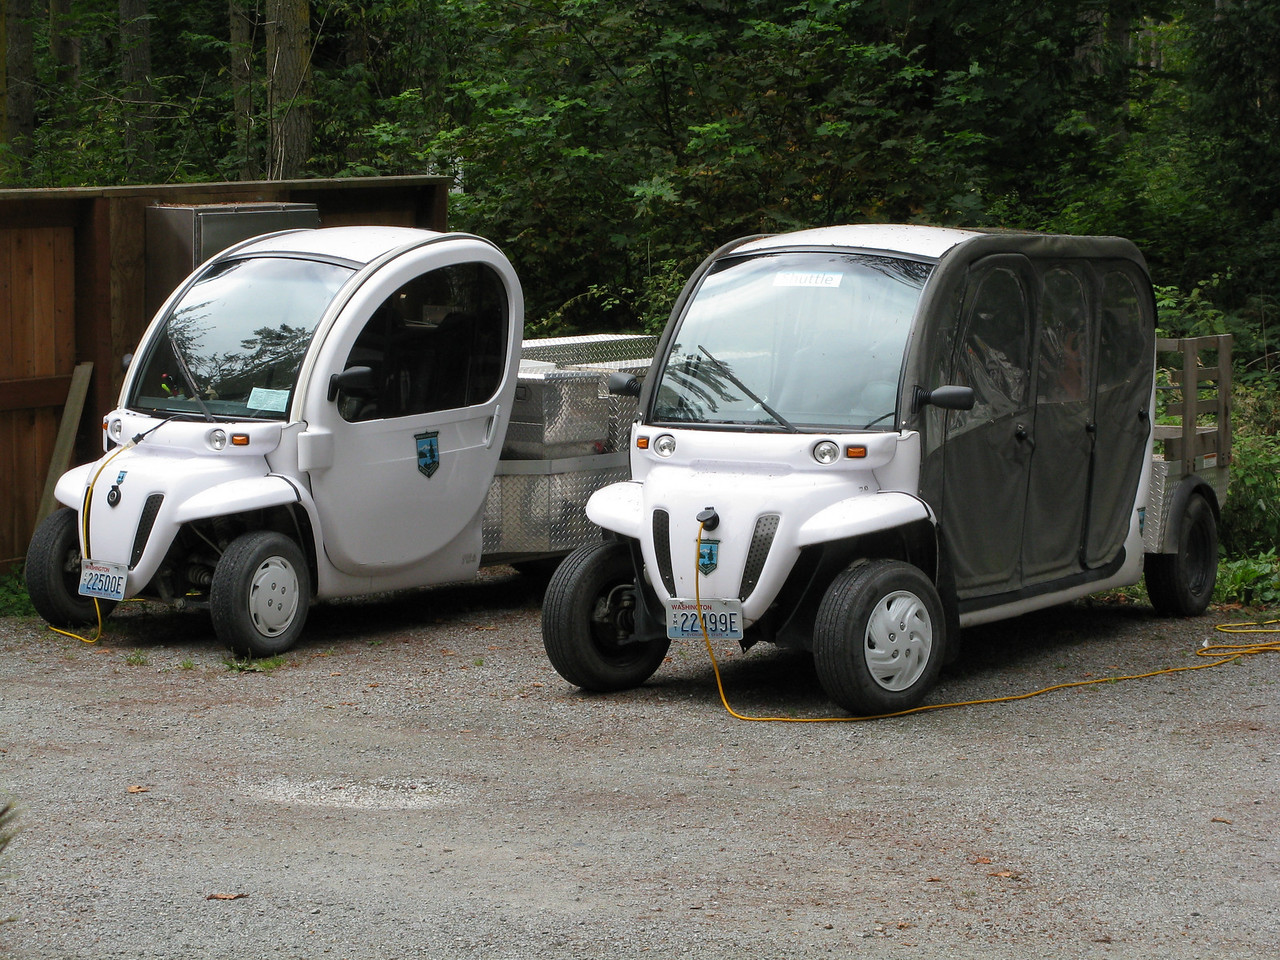 Mary is fascinated by these odd looking electric cars.  They are plugged into an electric source for recharging.  We did not see any electric cars functioning while we hiked in the park.  We were hiking on the Friends Trail when we came upon these vehicles.